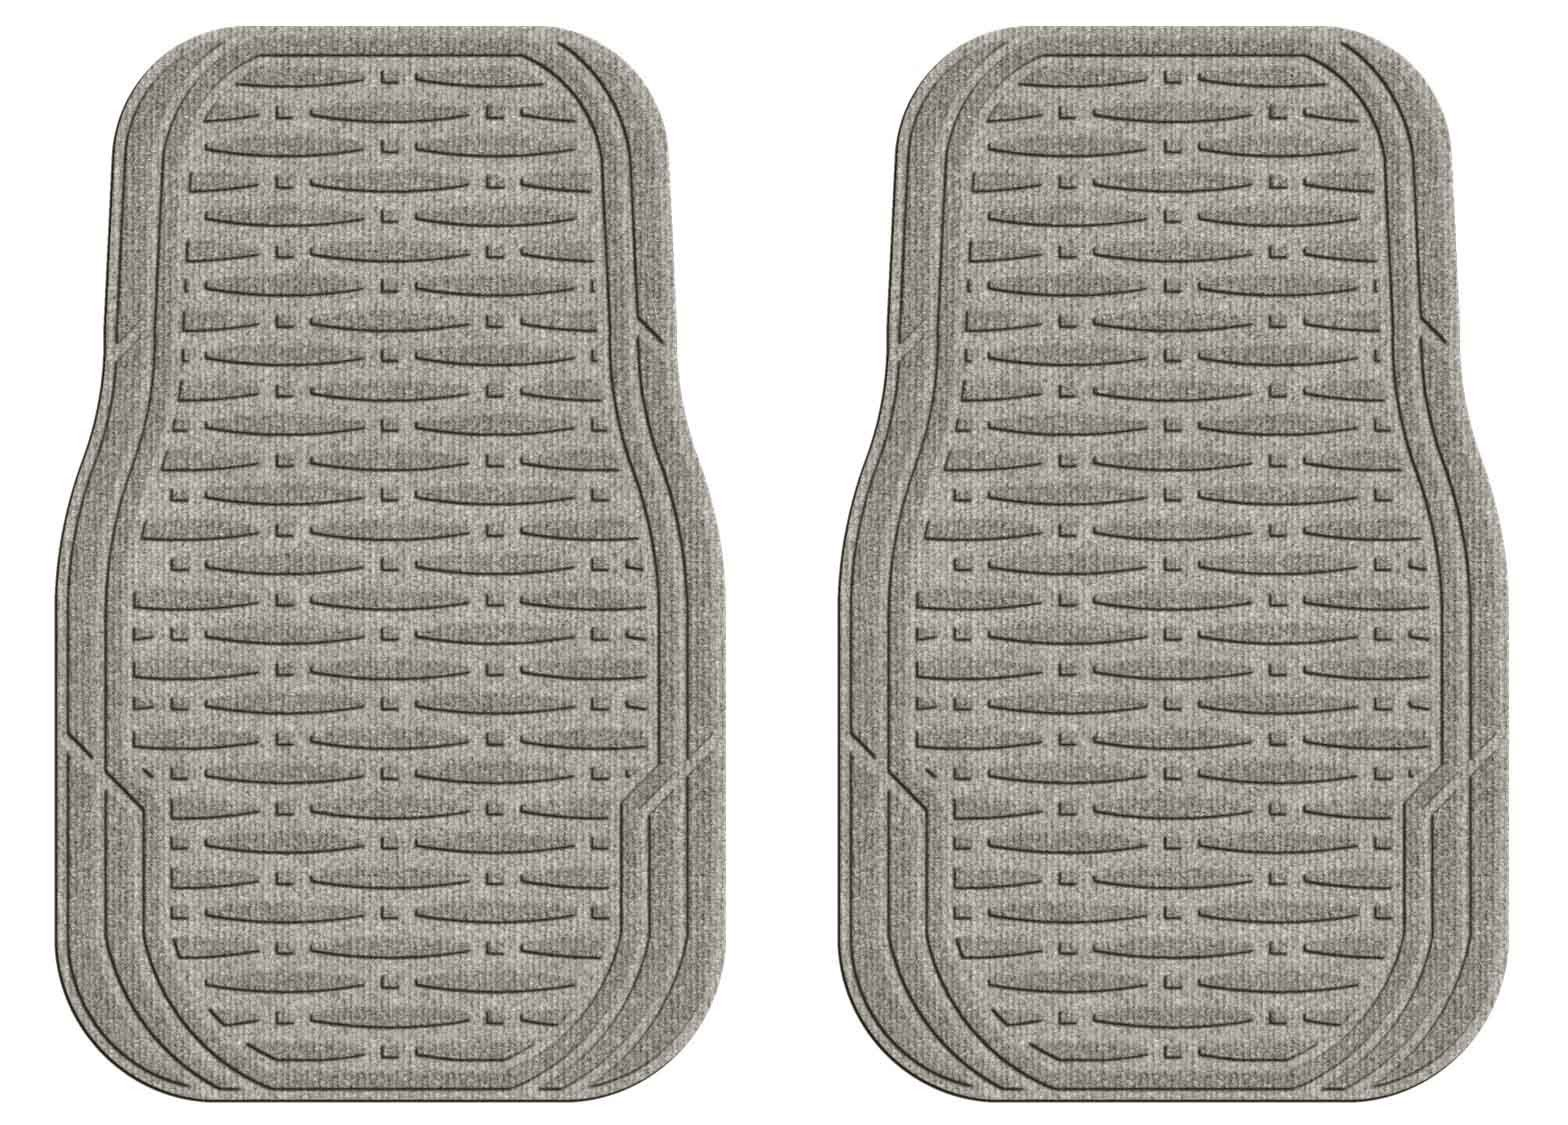 M+A Matting 3905570001 Waterhog Car Mat, Set-2, Traction, Medium, Gray Front by M+A Matting